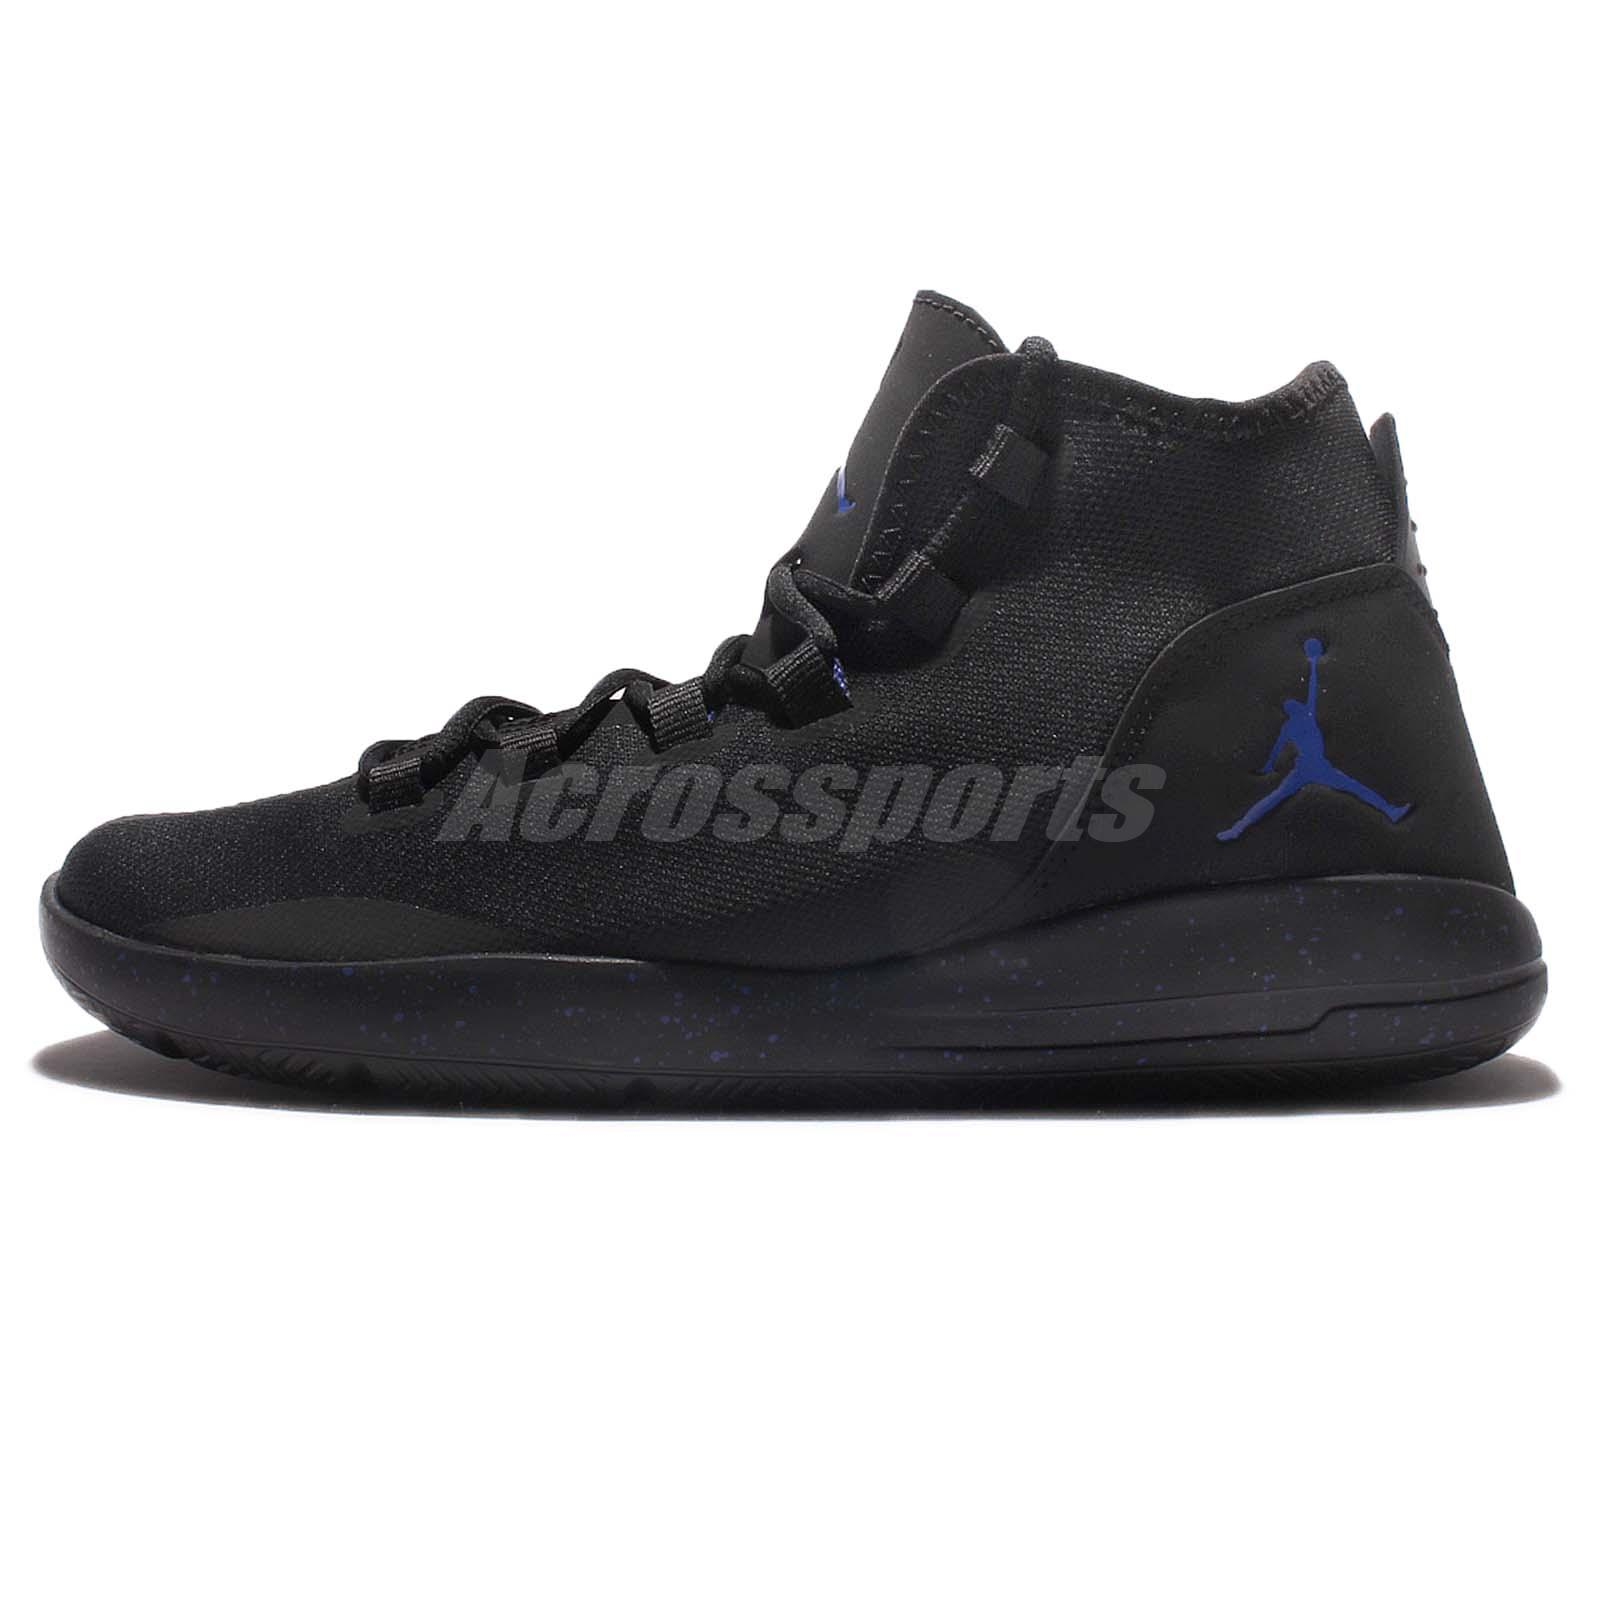 Nike Jordans With Clear Sole Shoes Black And Blue Sole Shoes For Men ... 304a54392